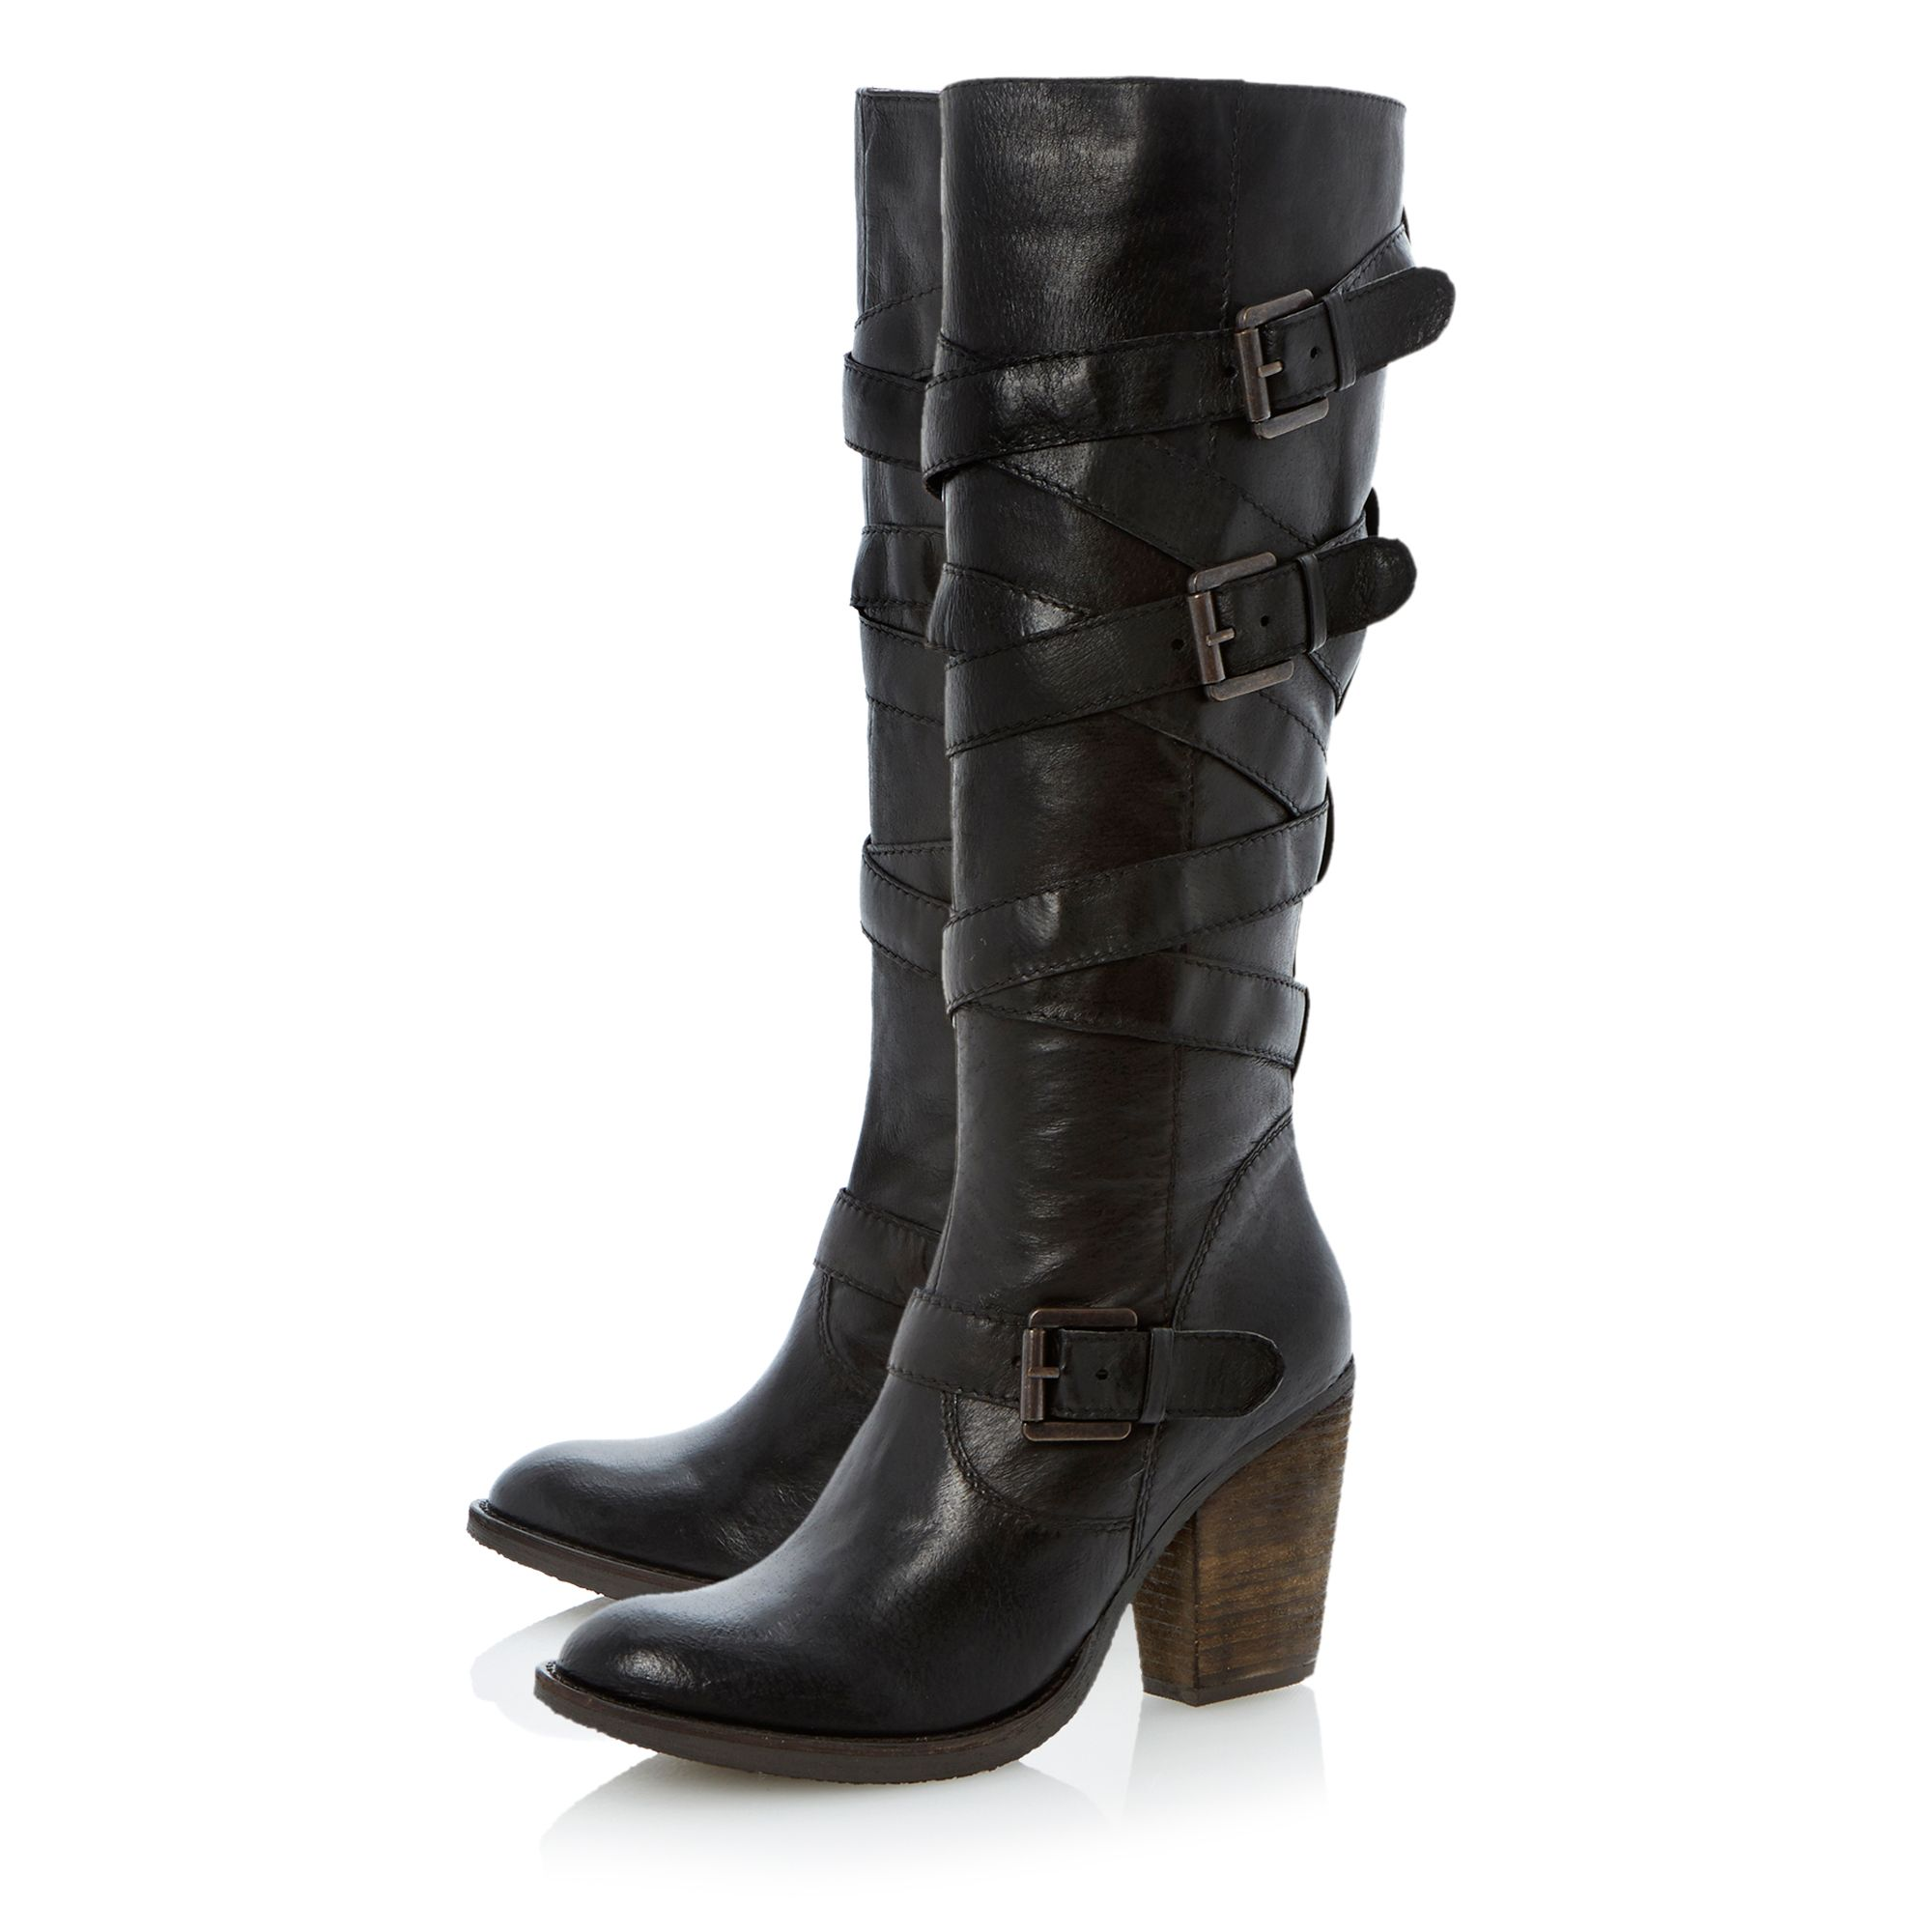 Renegaid wrap around strap heeled knee high boots